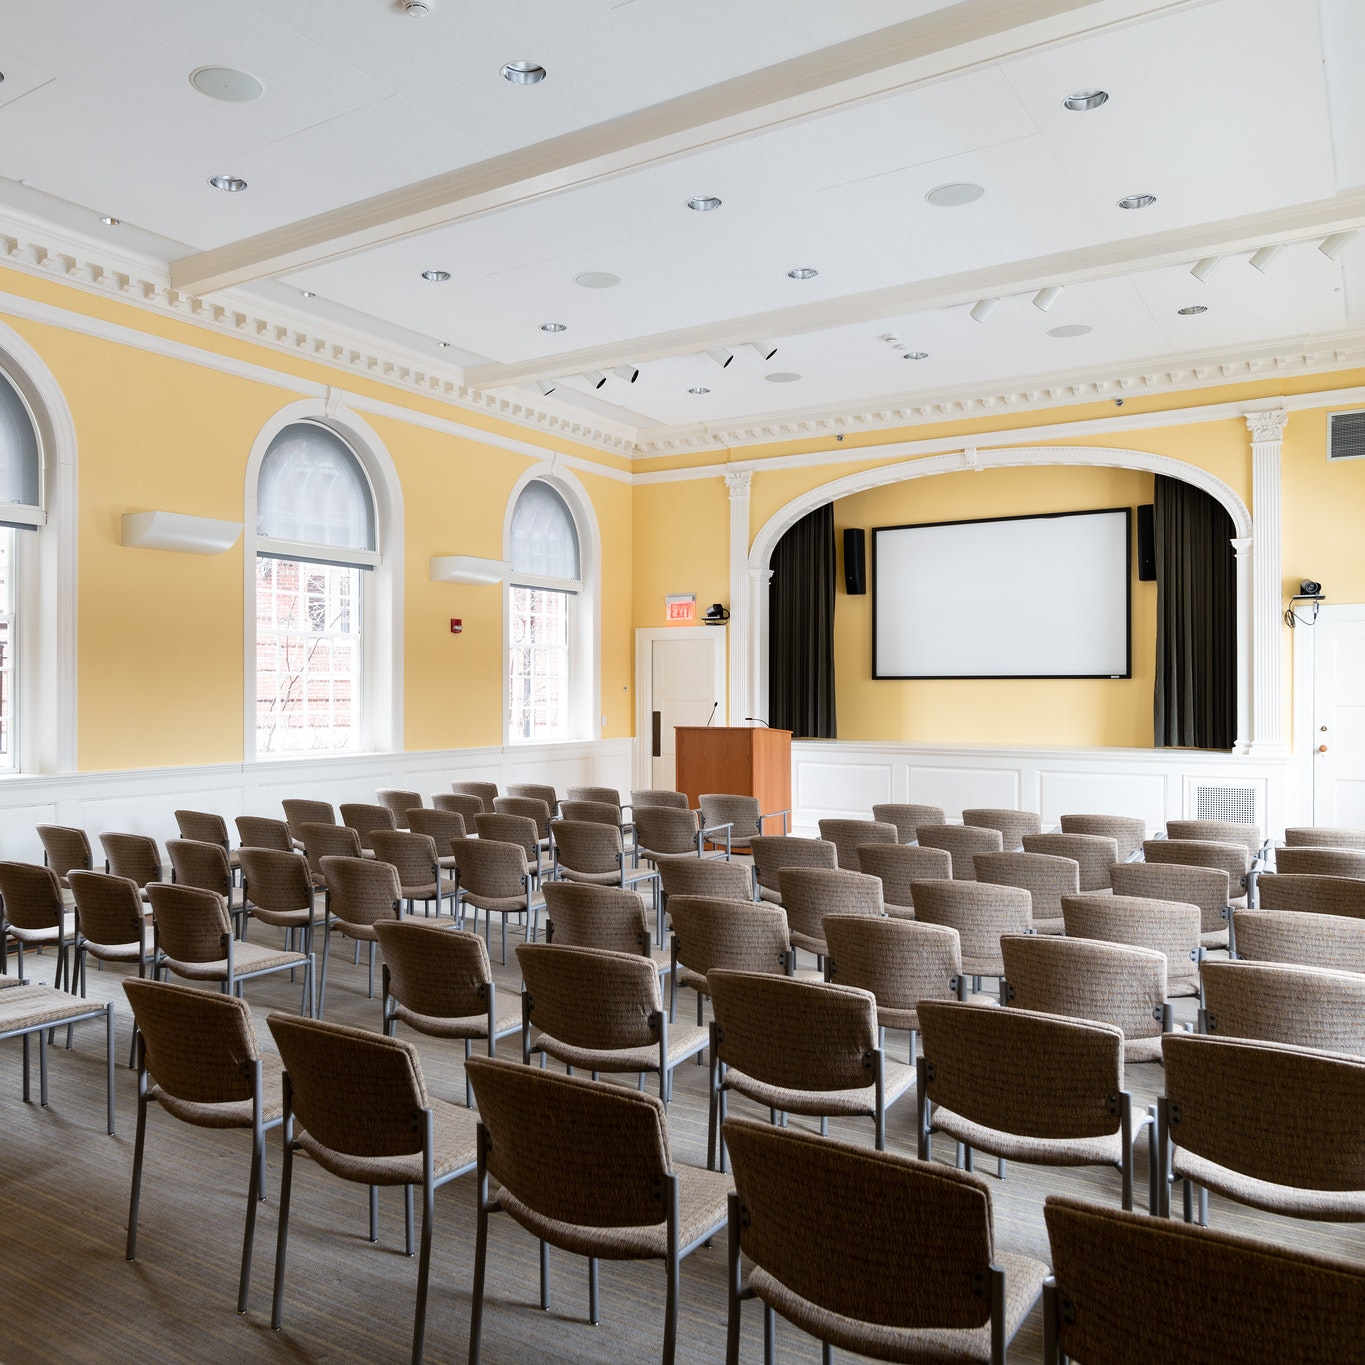 Theatre style setup for seating, with white projector in the front middle of the room, mounted to wall. Windows lining the east and west sides of the room. Walls are yellow.